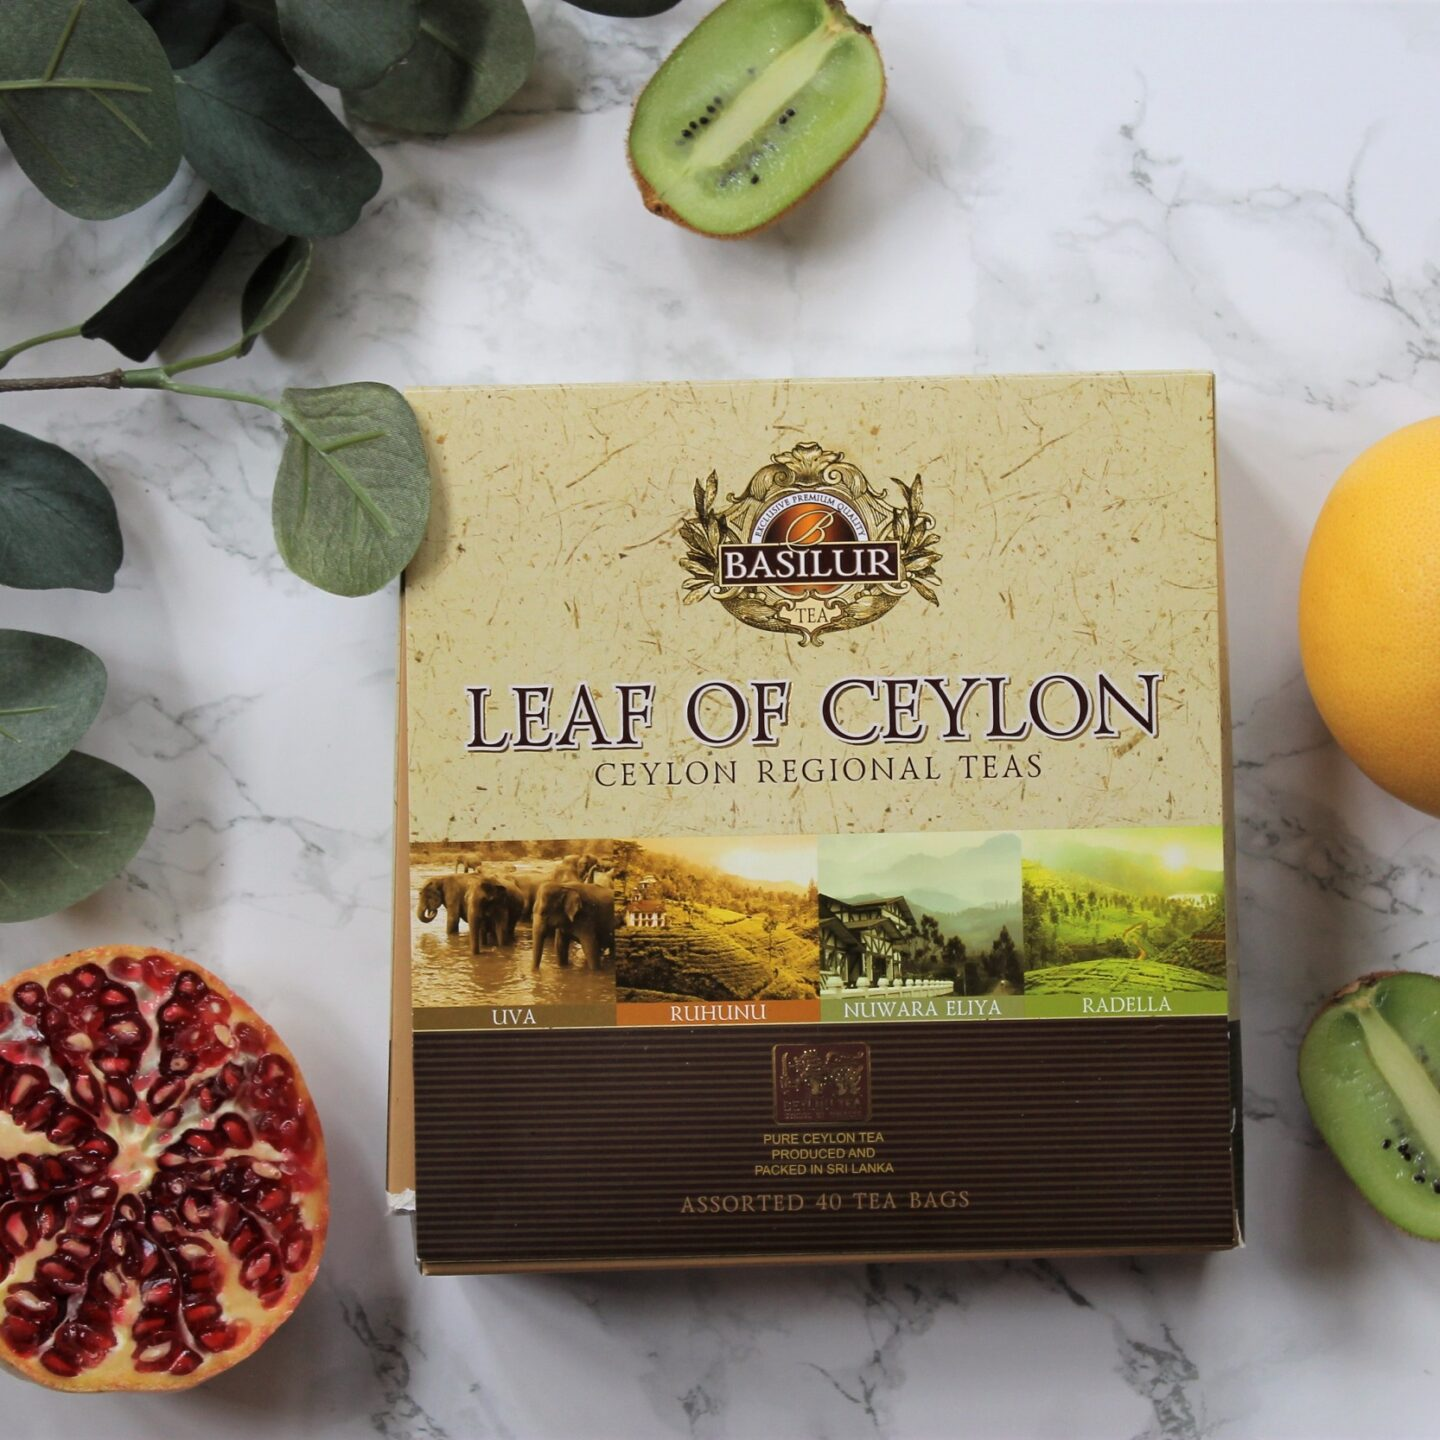 Basilur Leaf of Ceylon Tea Review